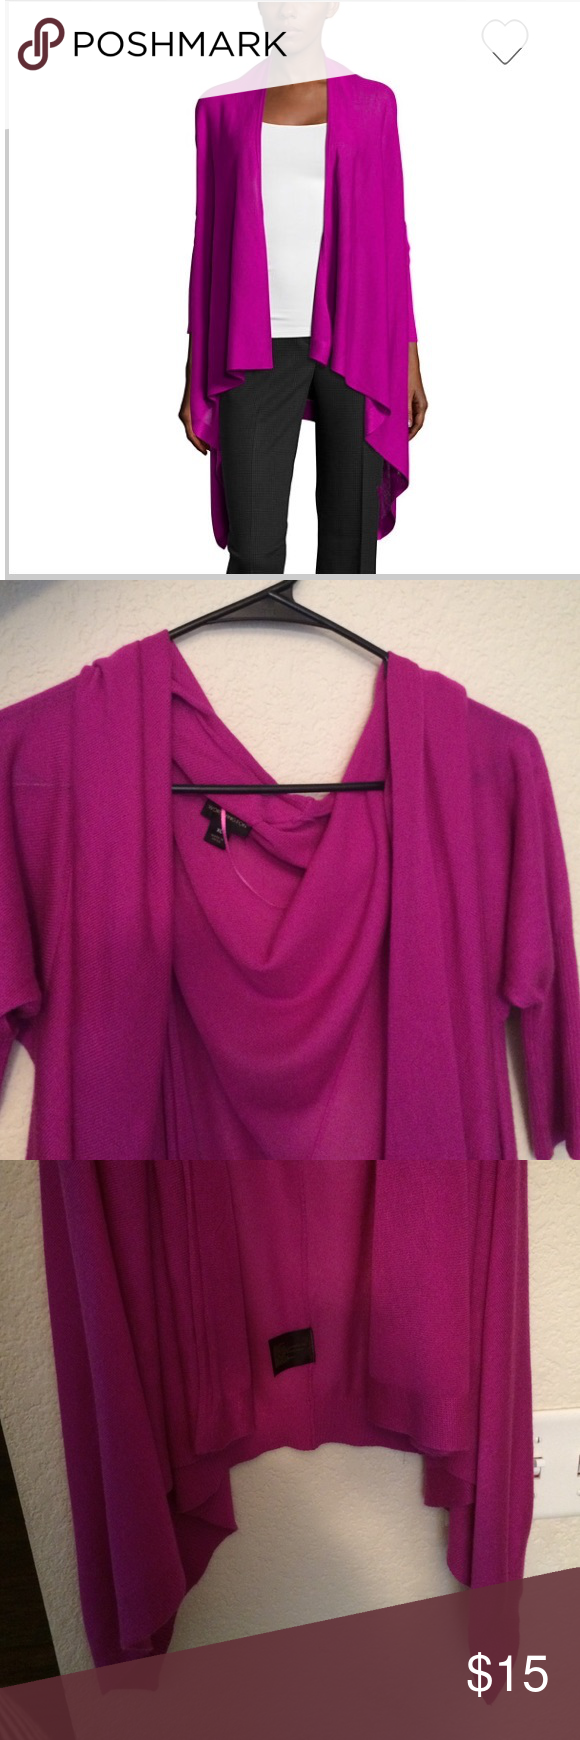 """Fly Away Cardigan A Beautiful Rich Pinkish Purple solid drapey cardigan has a flyaway design and back seam detail  3/4 sleeves approx. 36¾-38"""" length Worthington Sweaters Cardigans"""